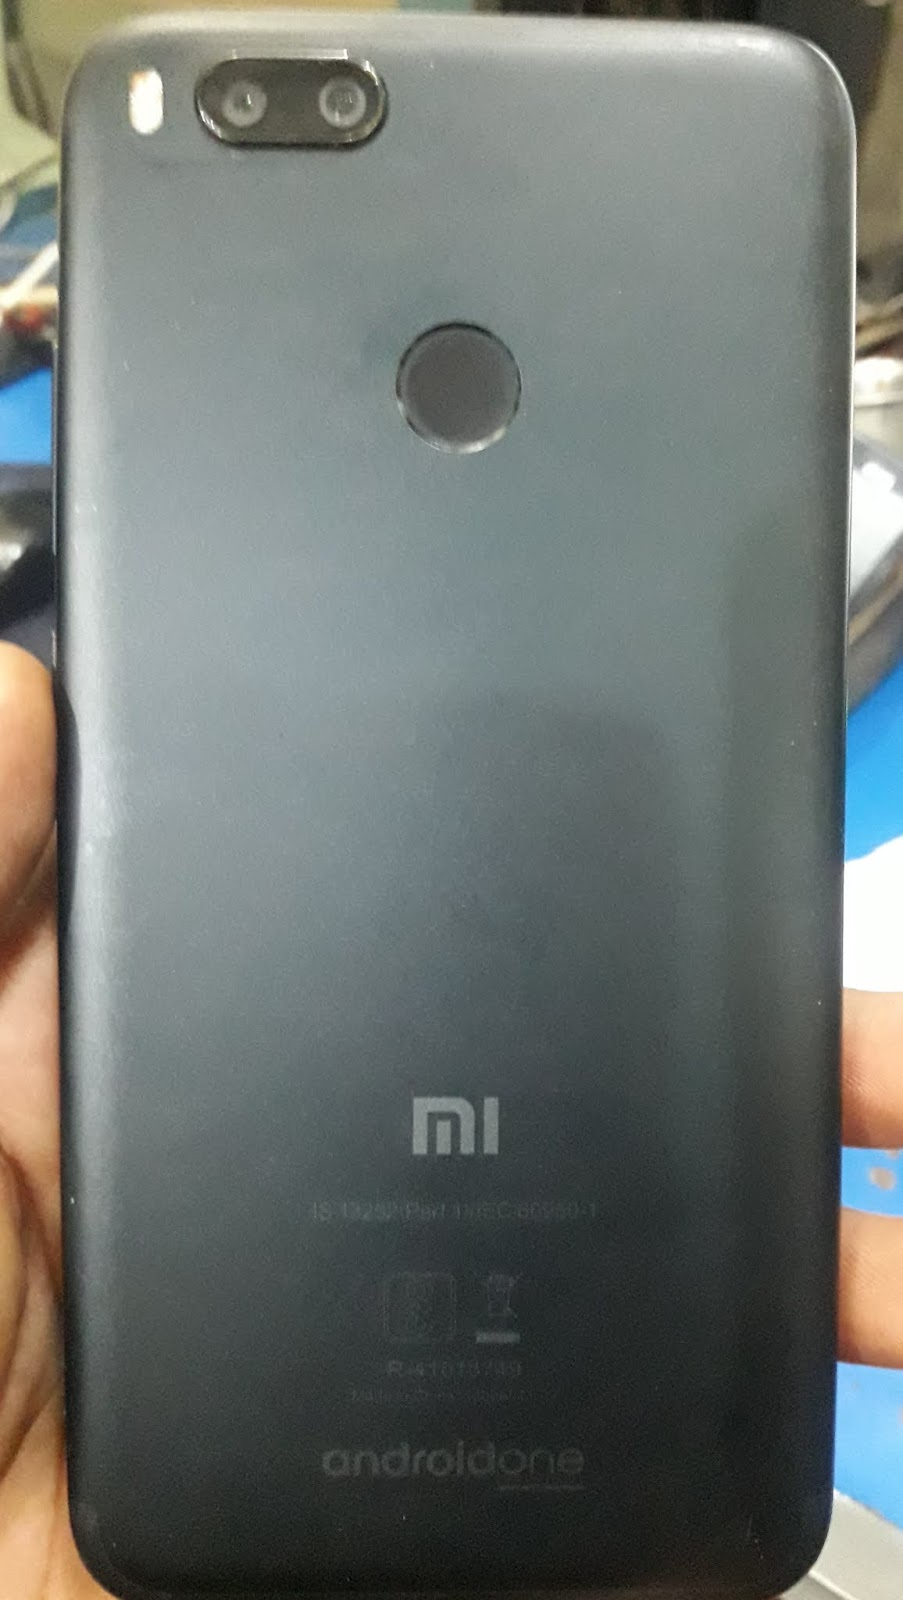 XIAOMI MD12 OR MI A1 DEAD RECOVERY FLASH FILE 100% TESTED